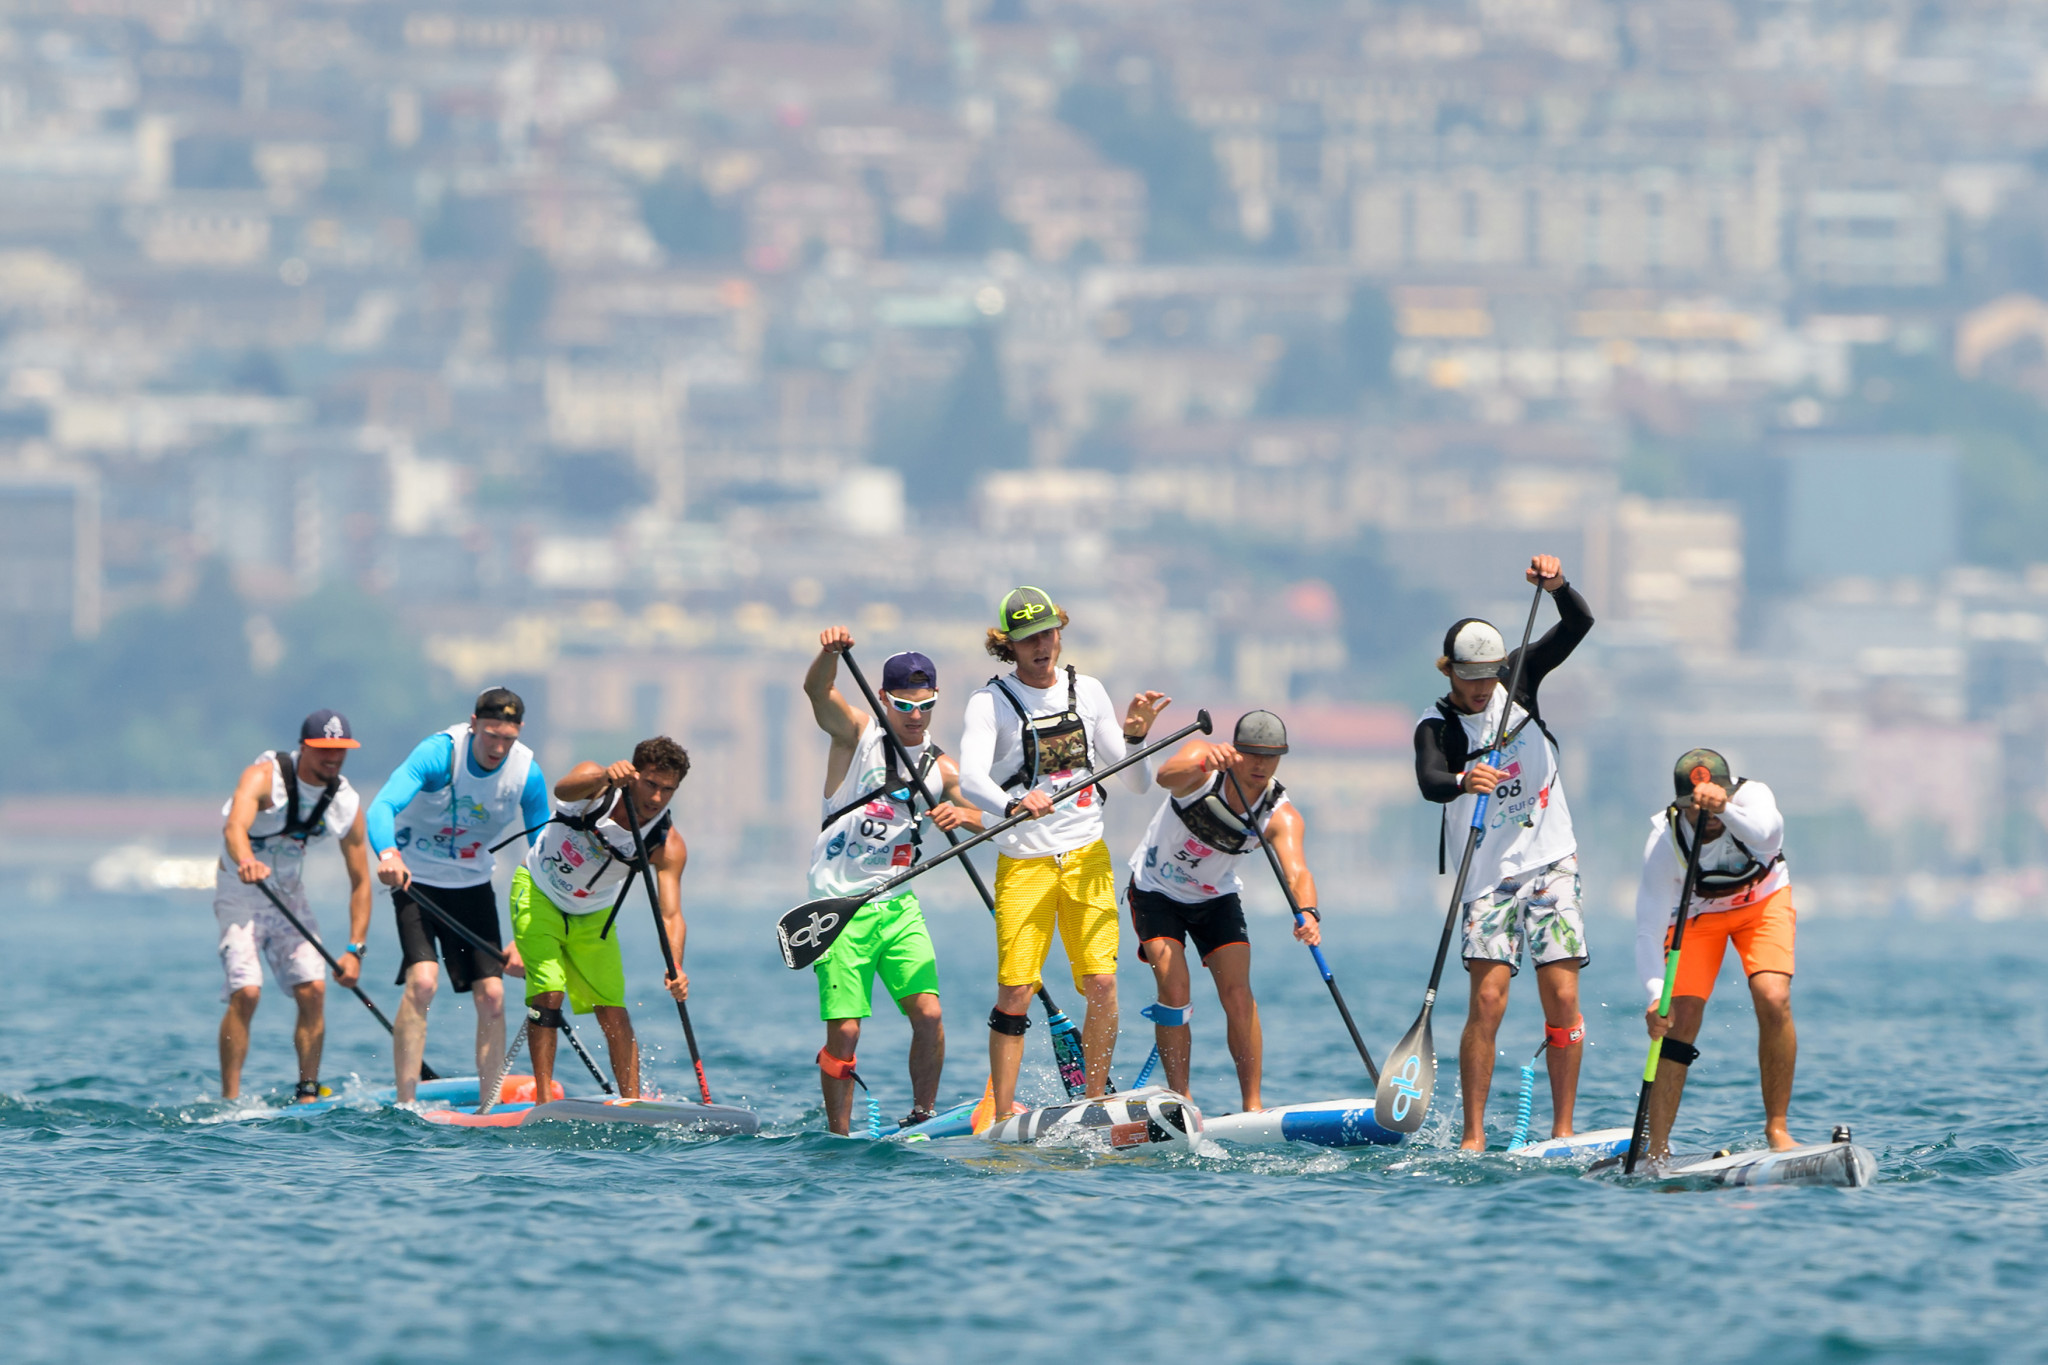 Canoeing and surfing both claim ownership of the SUP discipline ©Getty Images